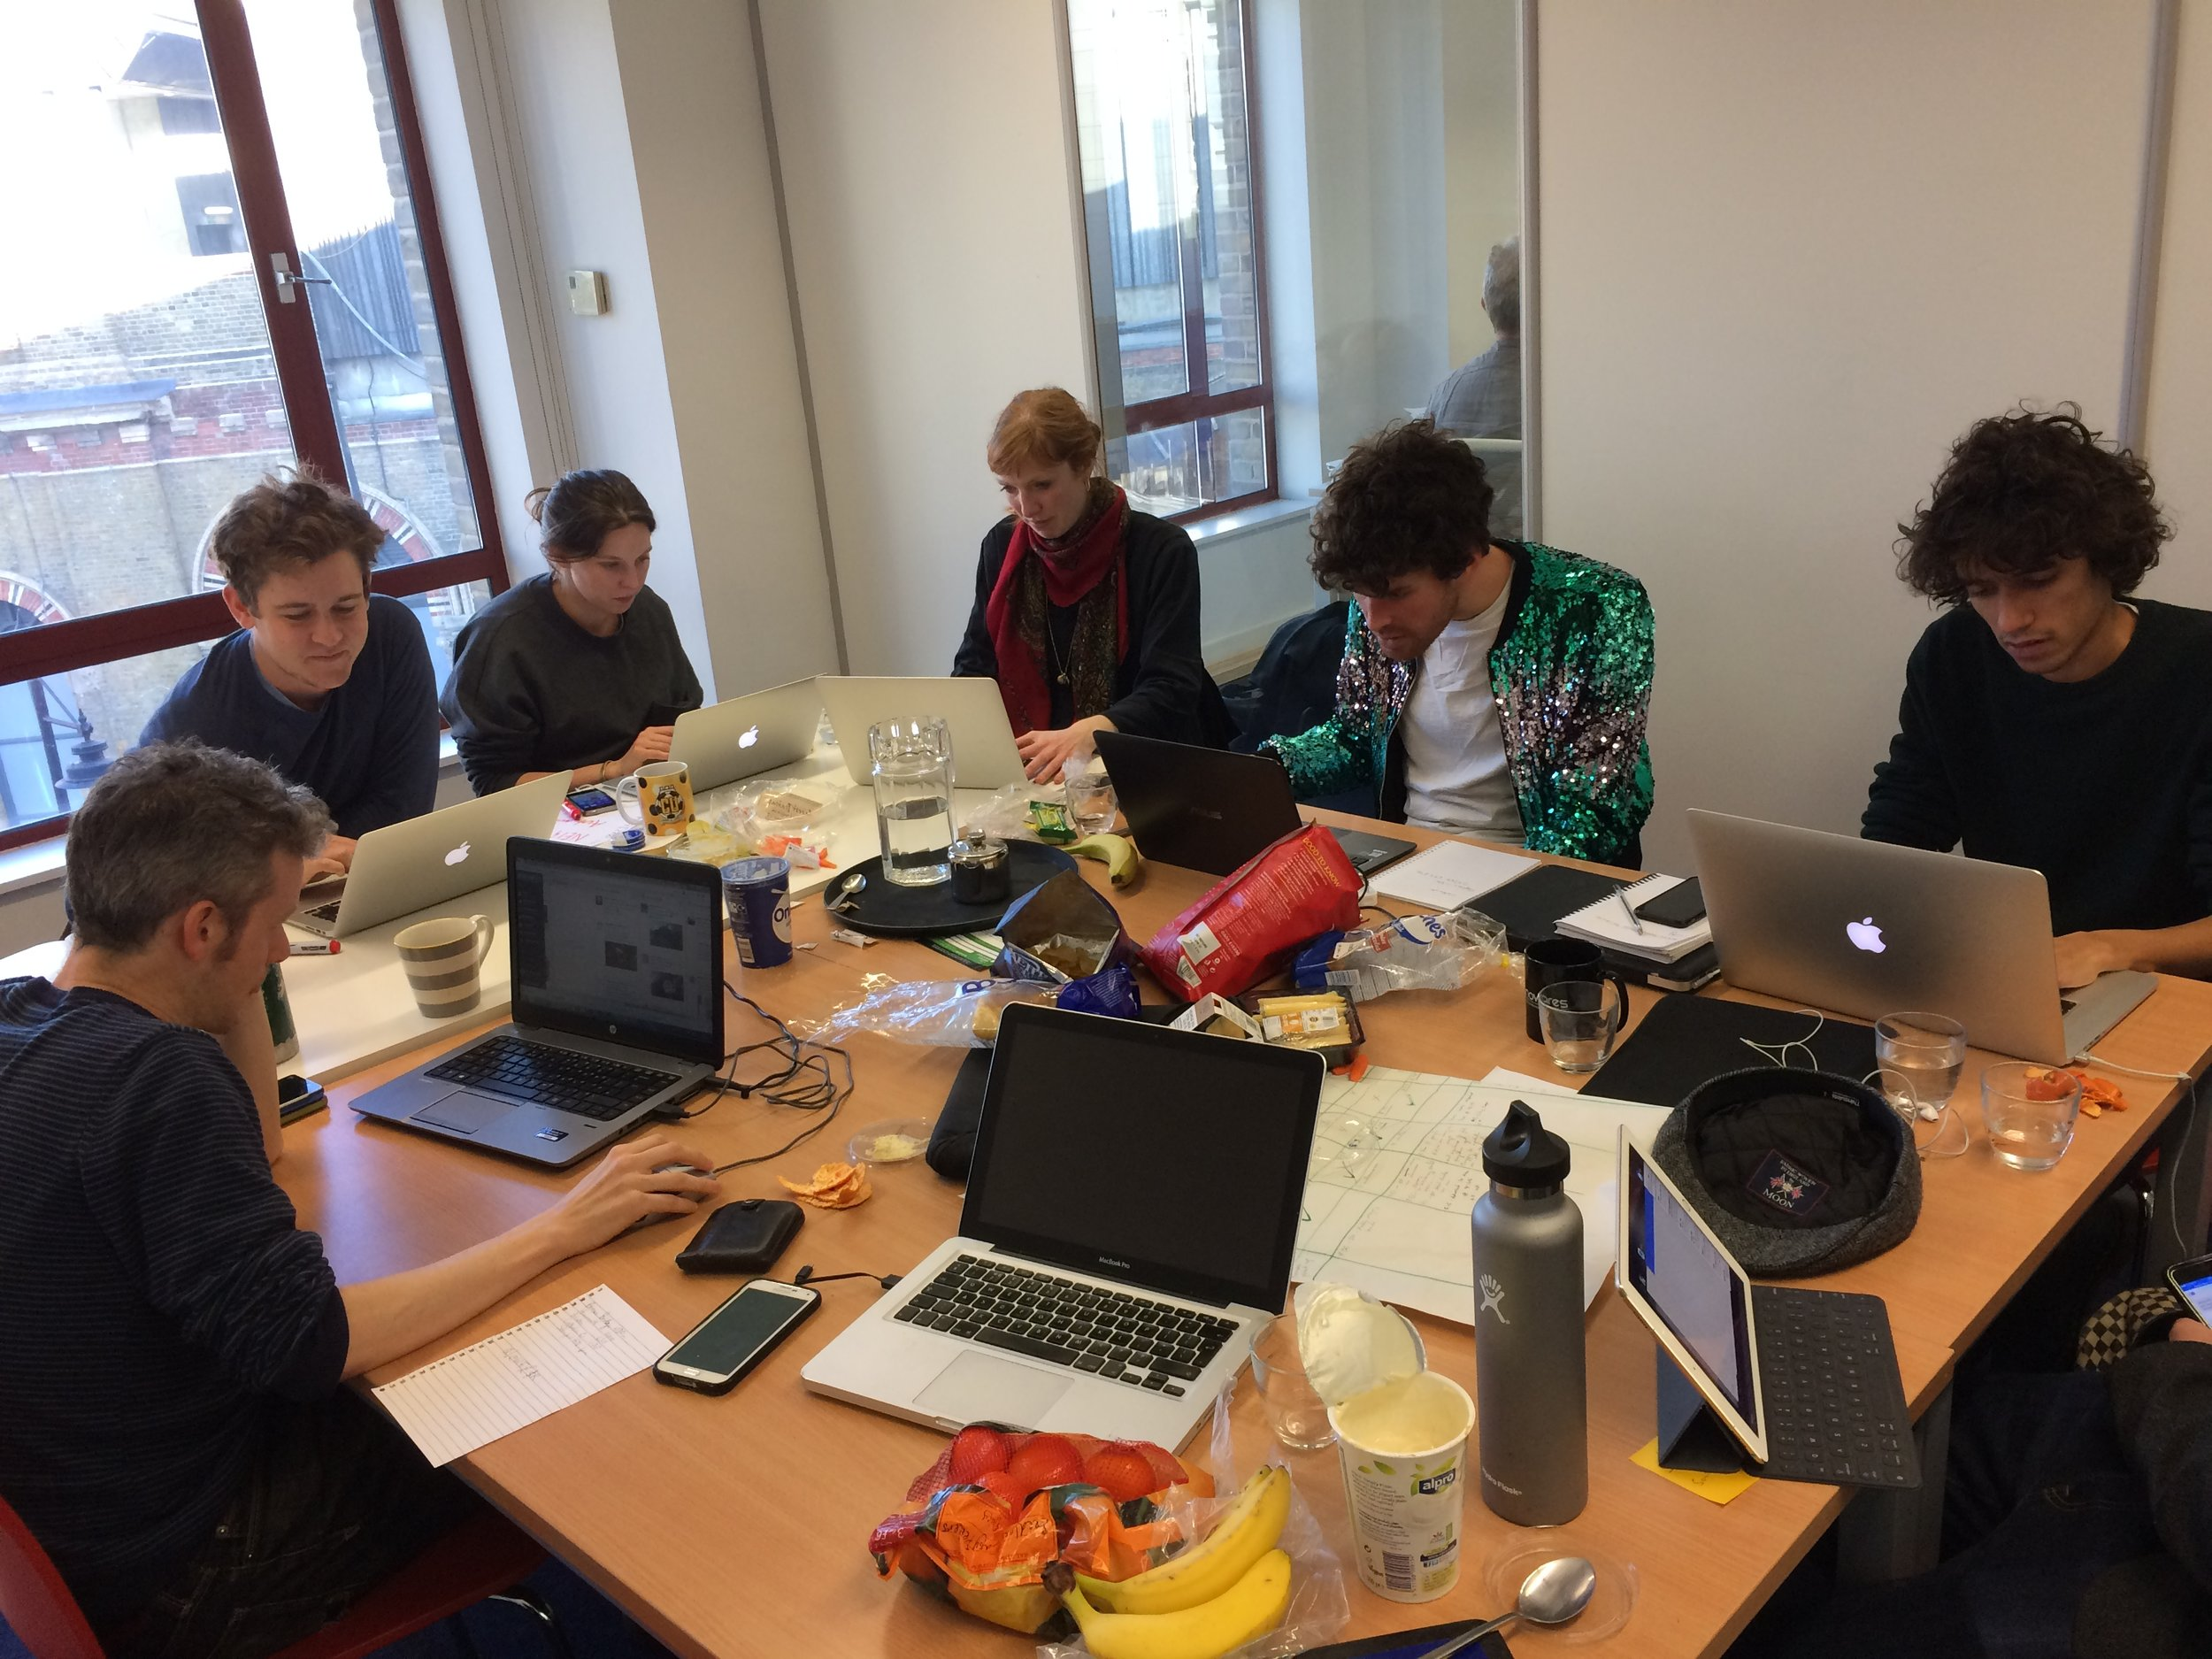 Some of the Bridges Not Walls comms team on January 20th.